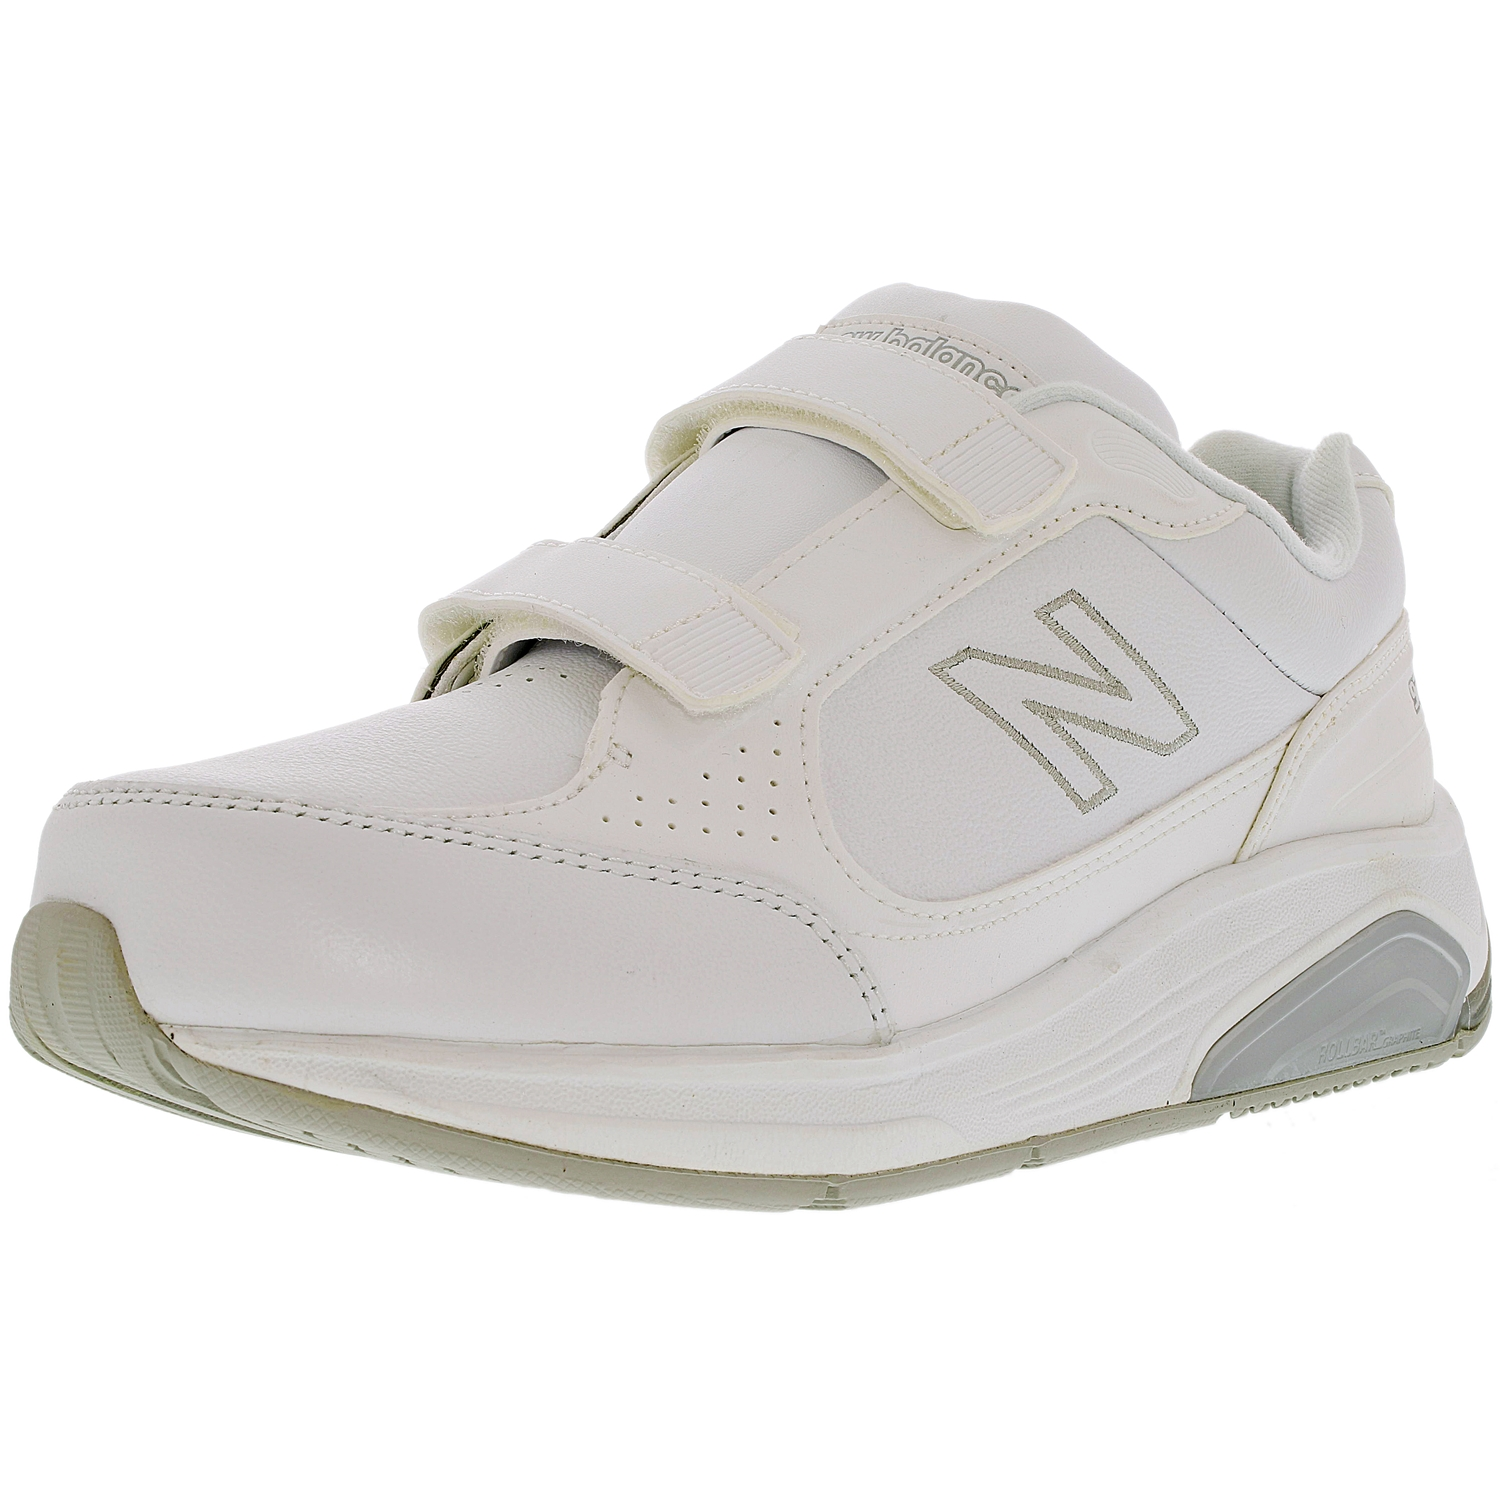 New Balance Women's Ww928 Vw Ankle-High Leather Walking S...